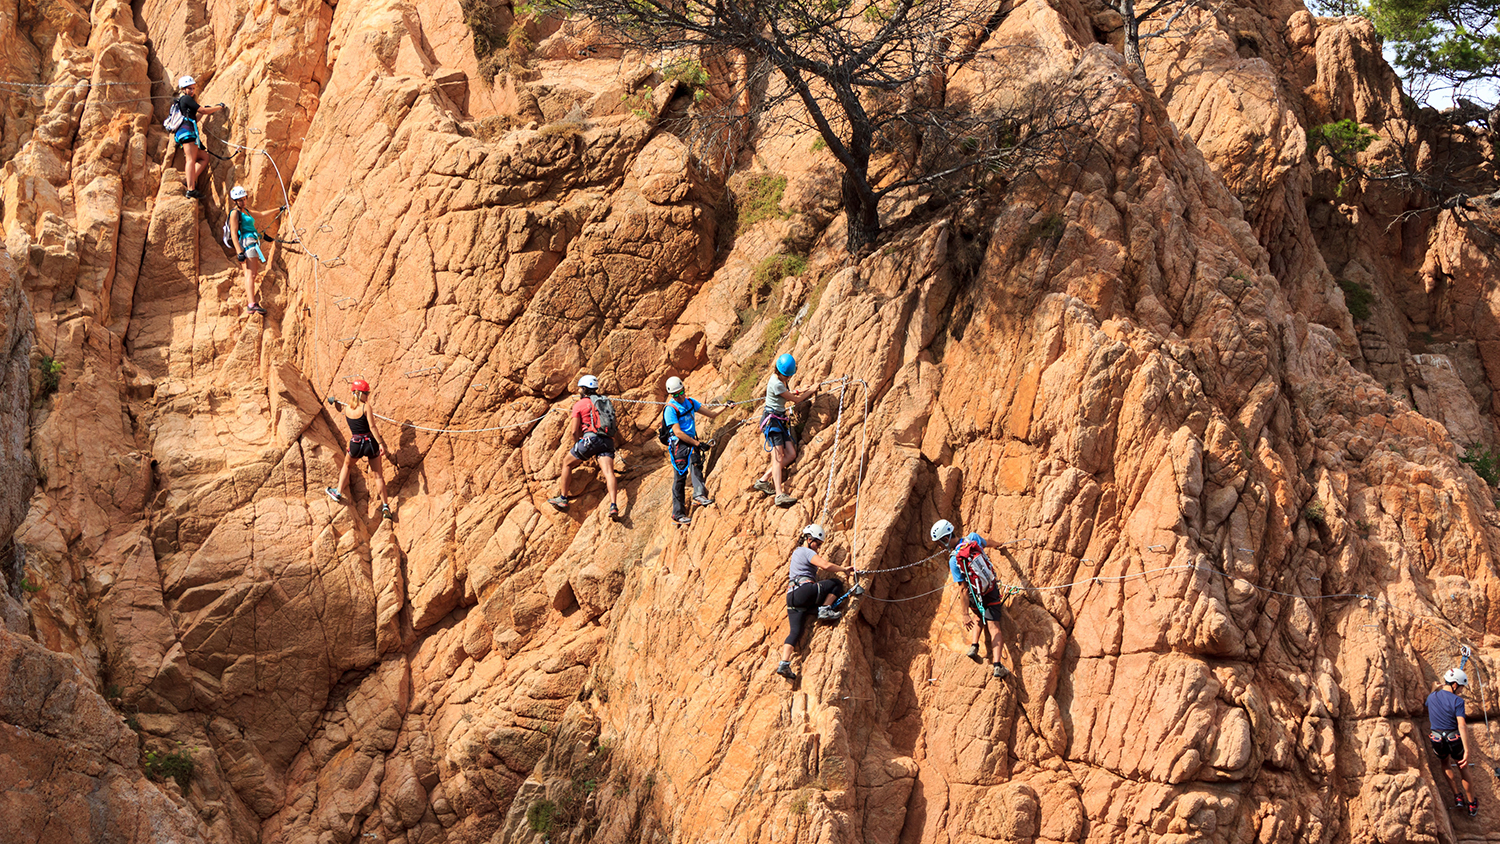 team of climbers ascending the side of a mountain wall